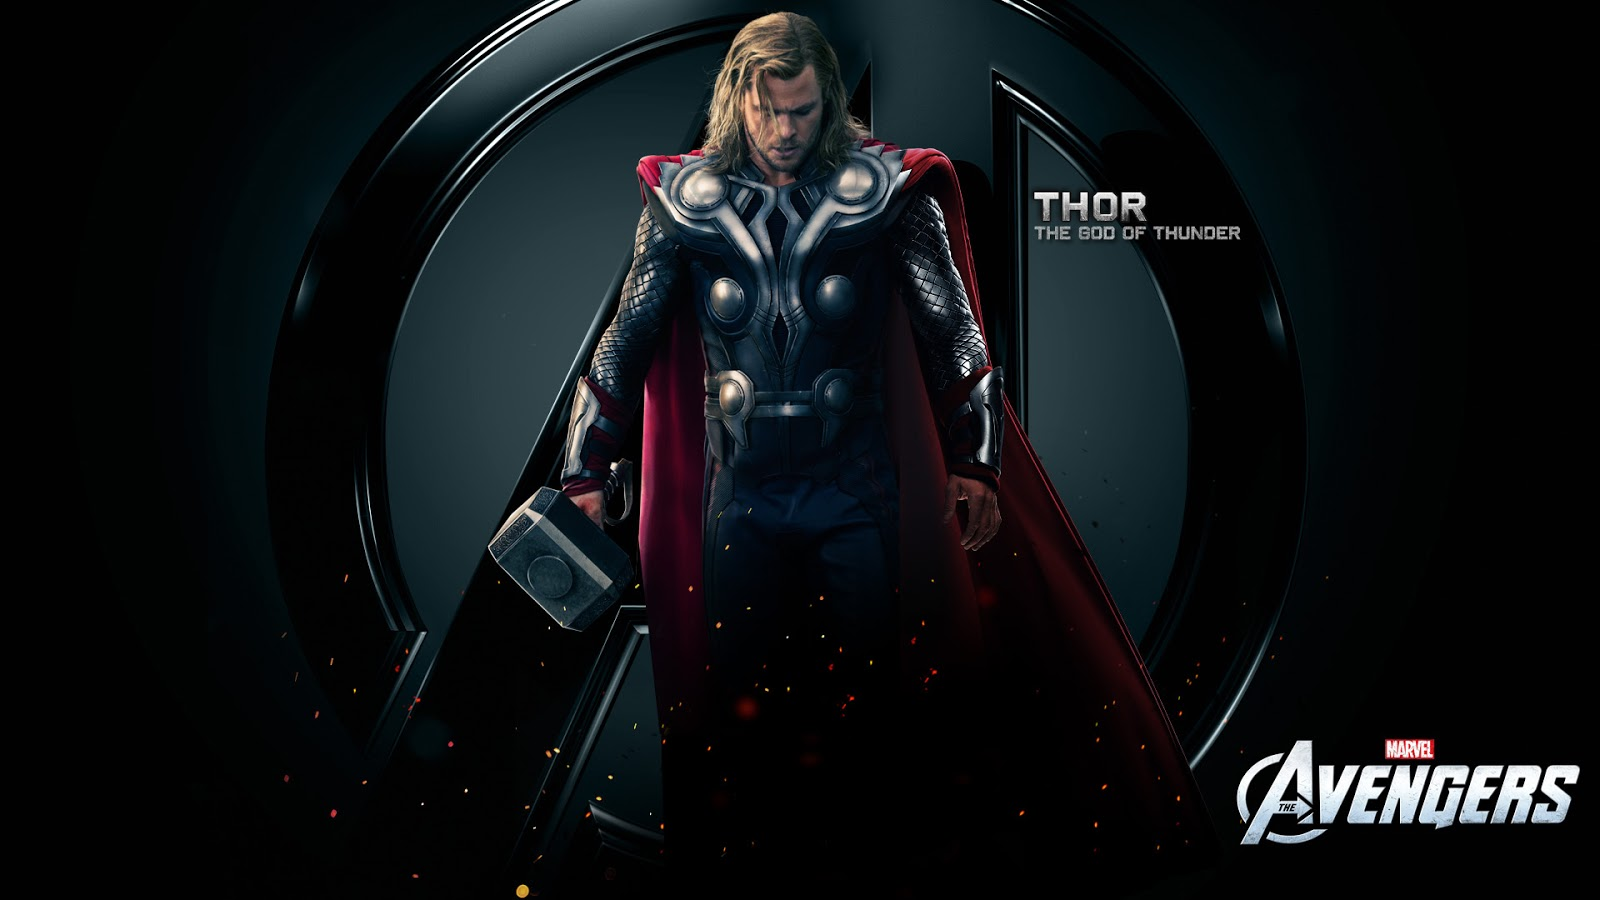 thor the dark world movie wallpapers - Thor The Dark World Movie Wallpapers HD Wallpapers